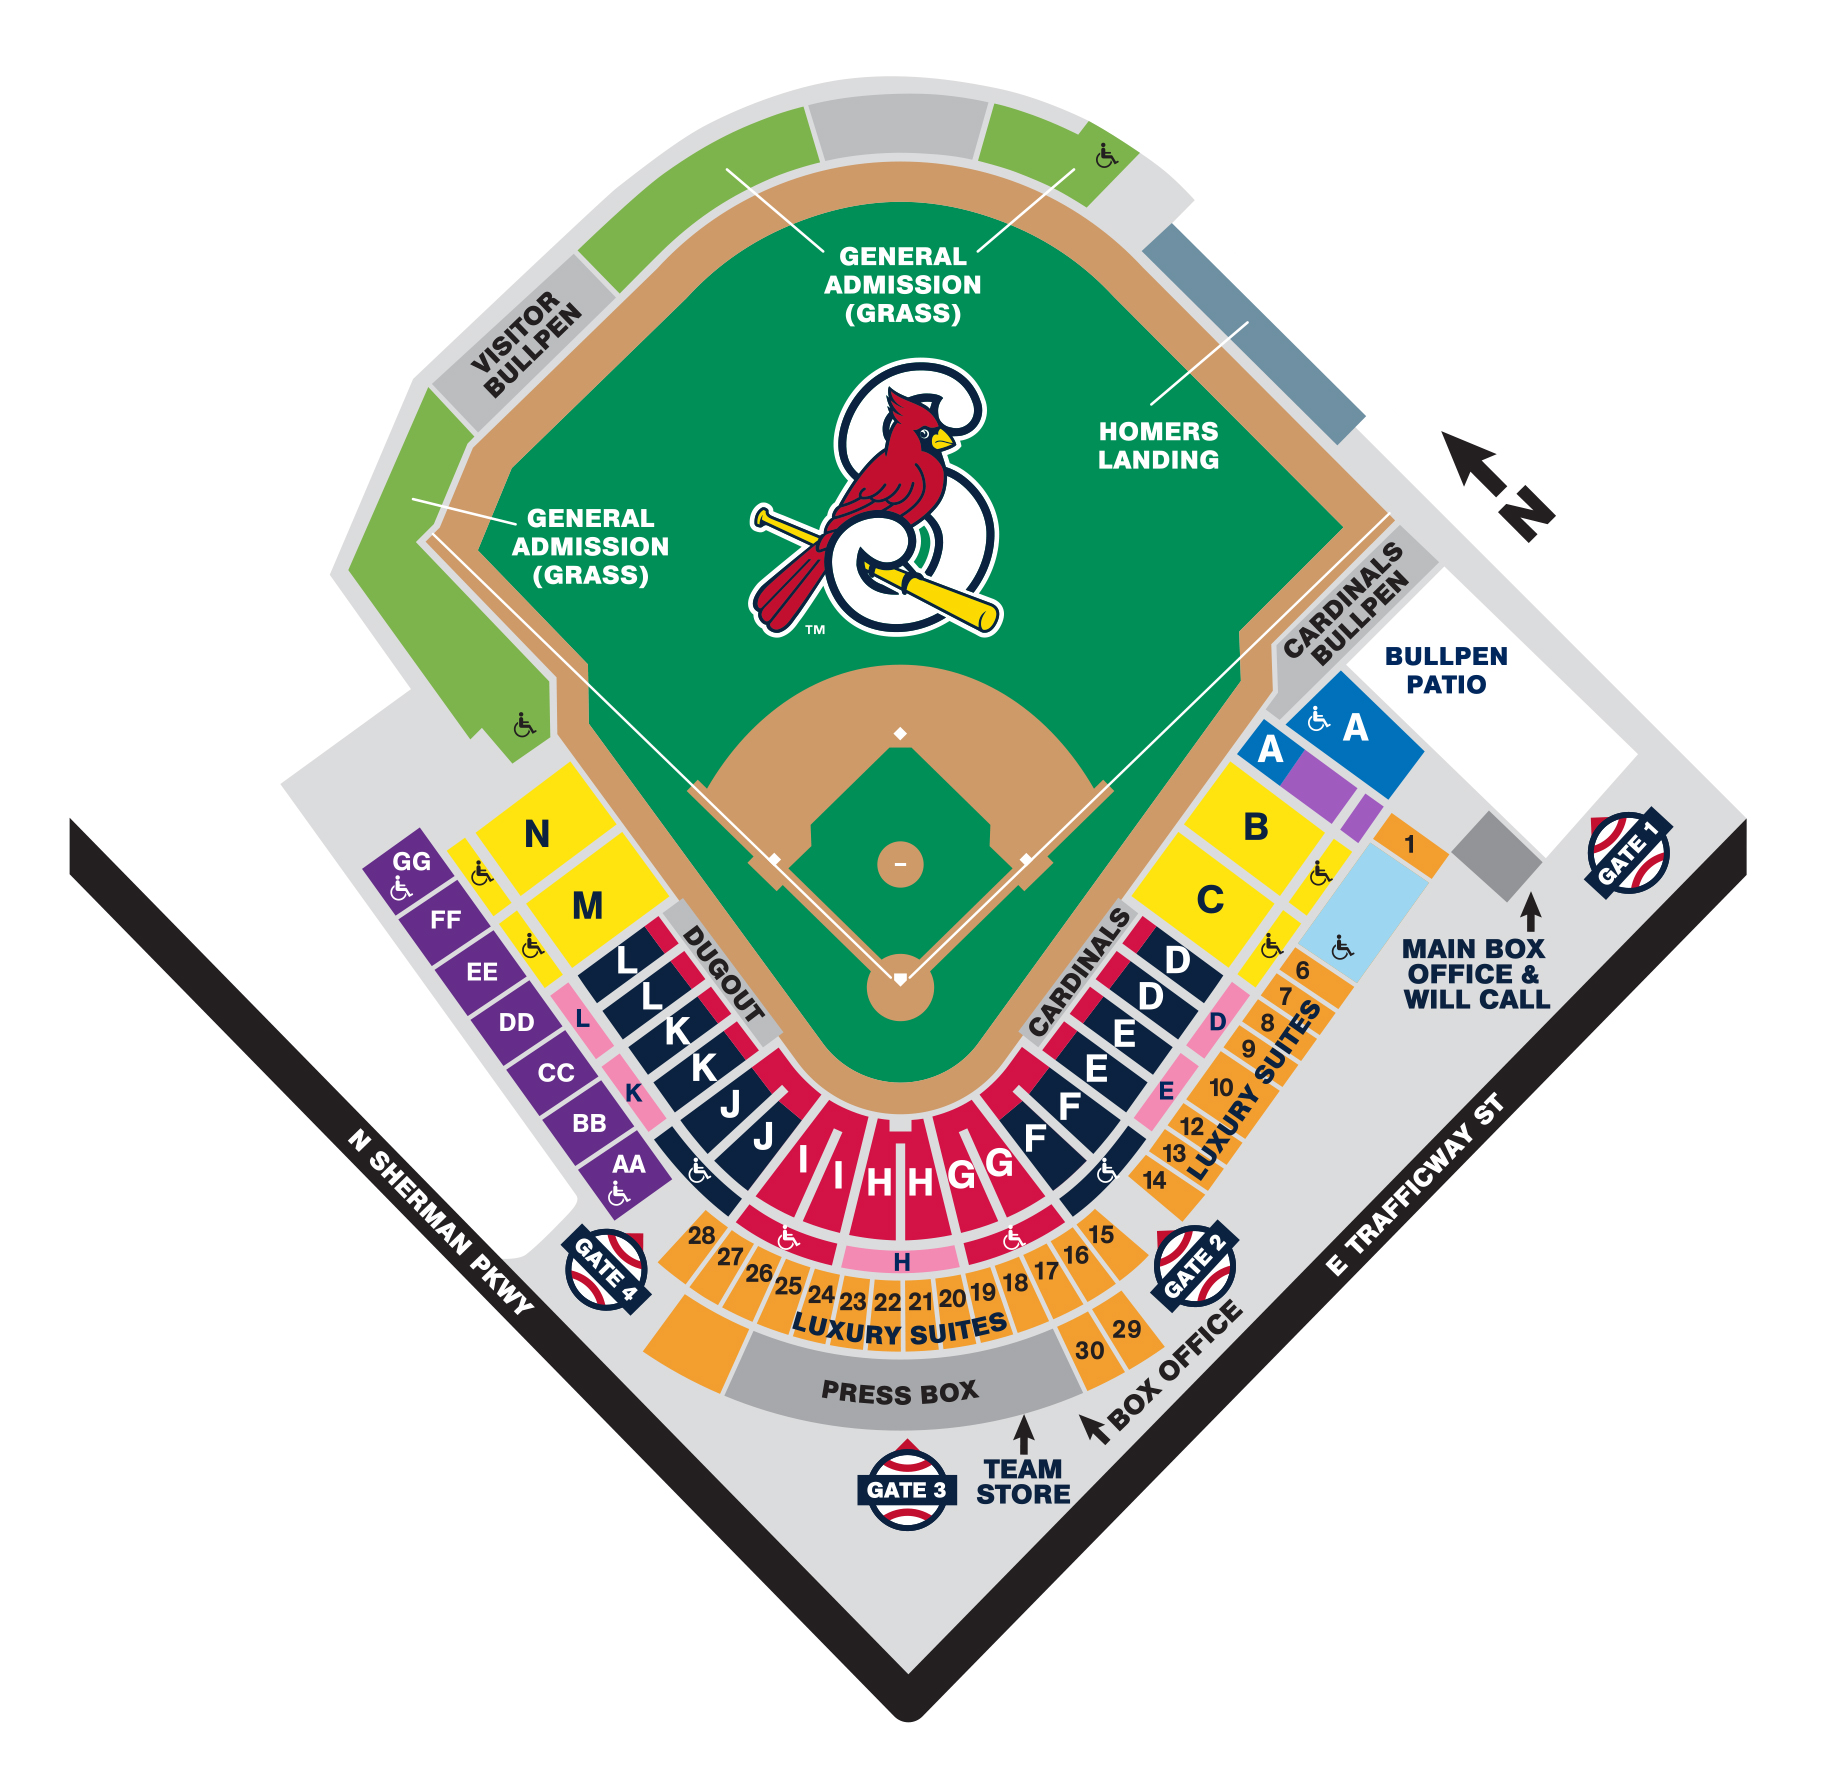 RED Access | Springfield Cardinals | Cardinals on cardinals stadium, cardinals wallpaper, cardinals bedding, cardinals calendar, cardinals shoes, cardinals opening day 2015, cardinals postseason, cardinals field, cardinals ballpark village, cardinals super bowl, cardinals girls, cardinals sweep, cardinals banner, cardinals tickets map, cardinals parking map, cardinals catcher, cardinals game schedule, cardinals lose, cardinals ticket packages, cardinals spring training tickets,